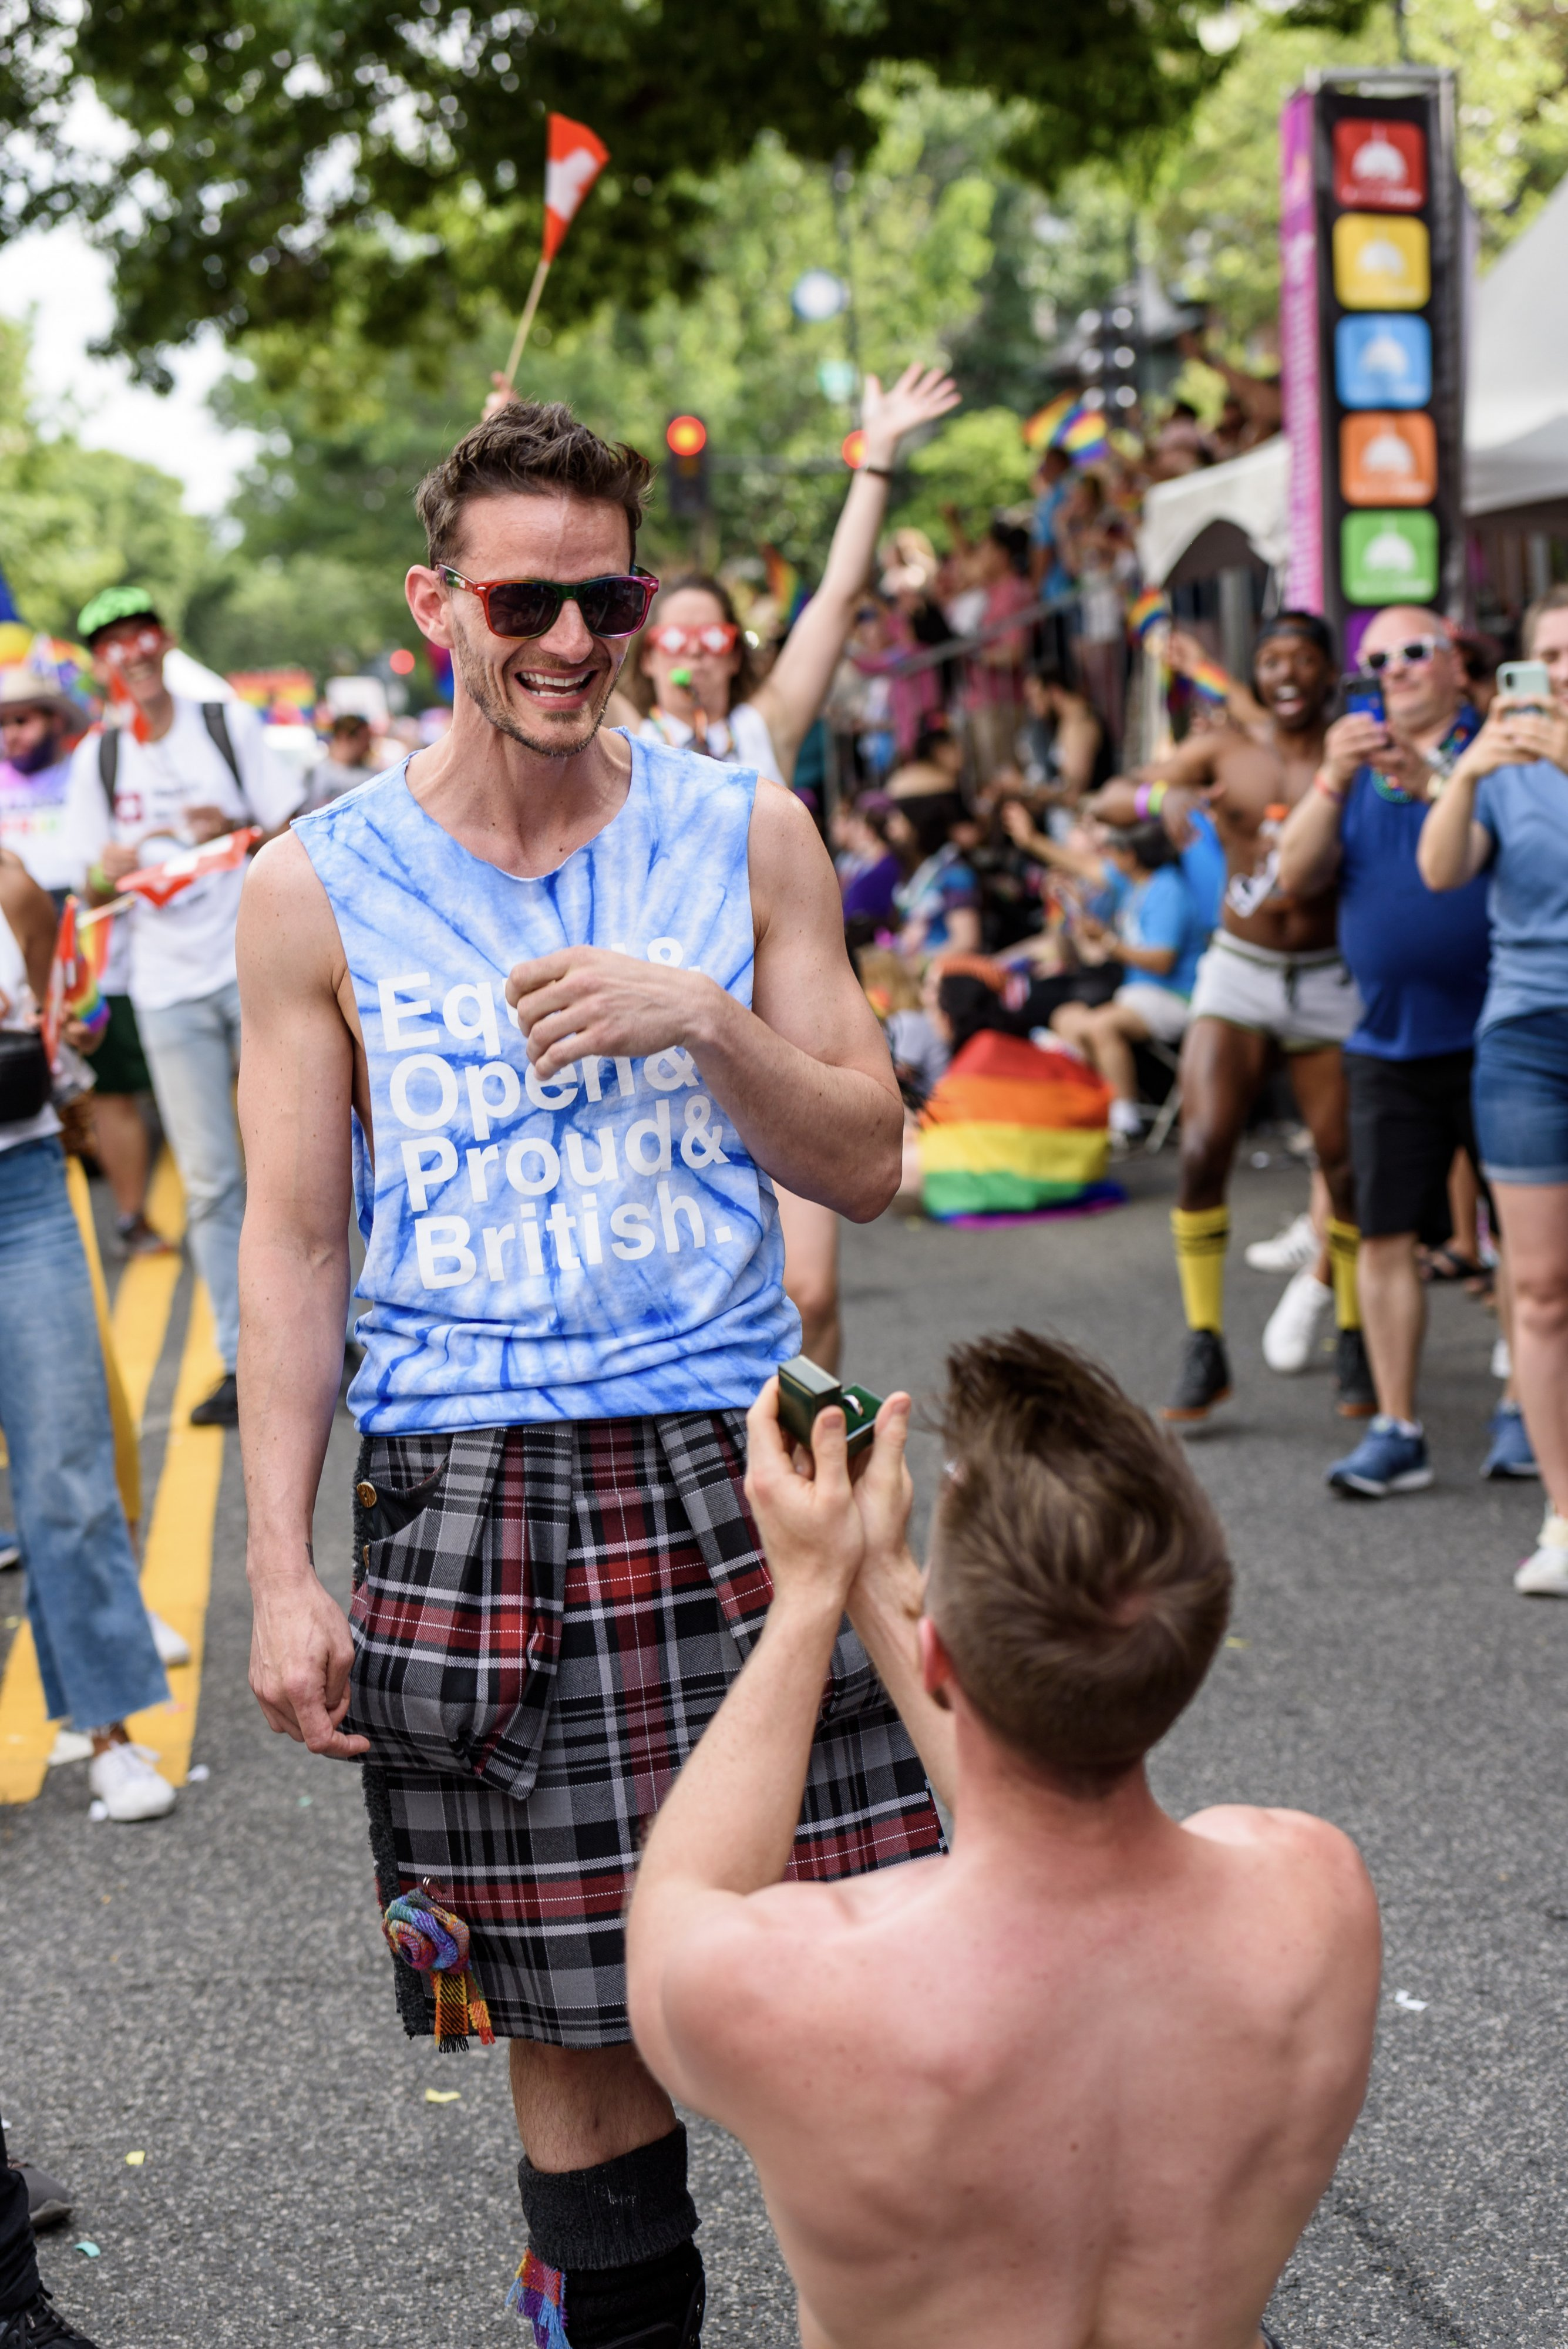 Finley Wilson proposes to Alan Lambie during the parade. Photograph by Scott Marder.